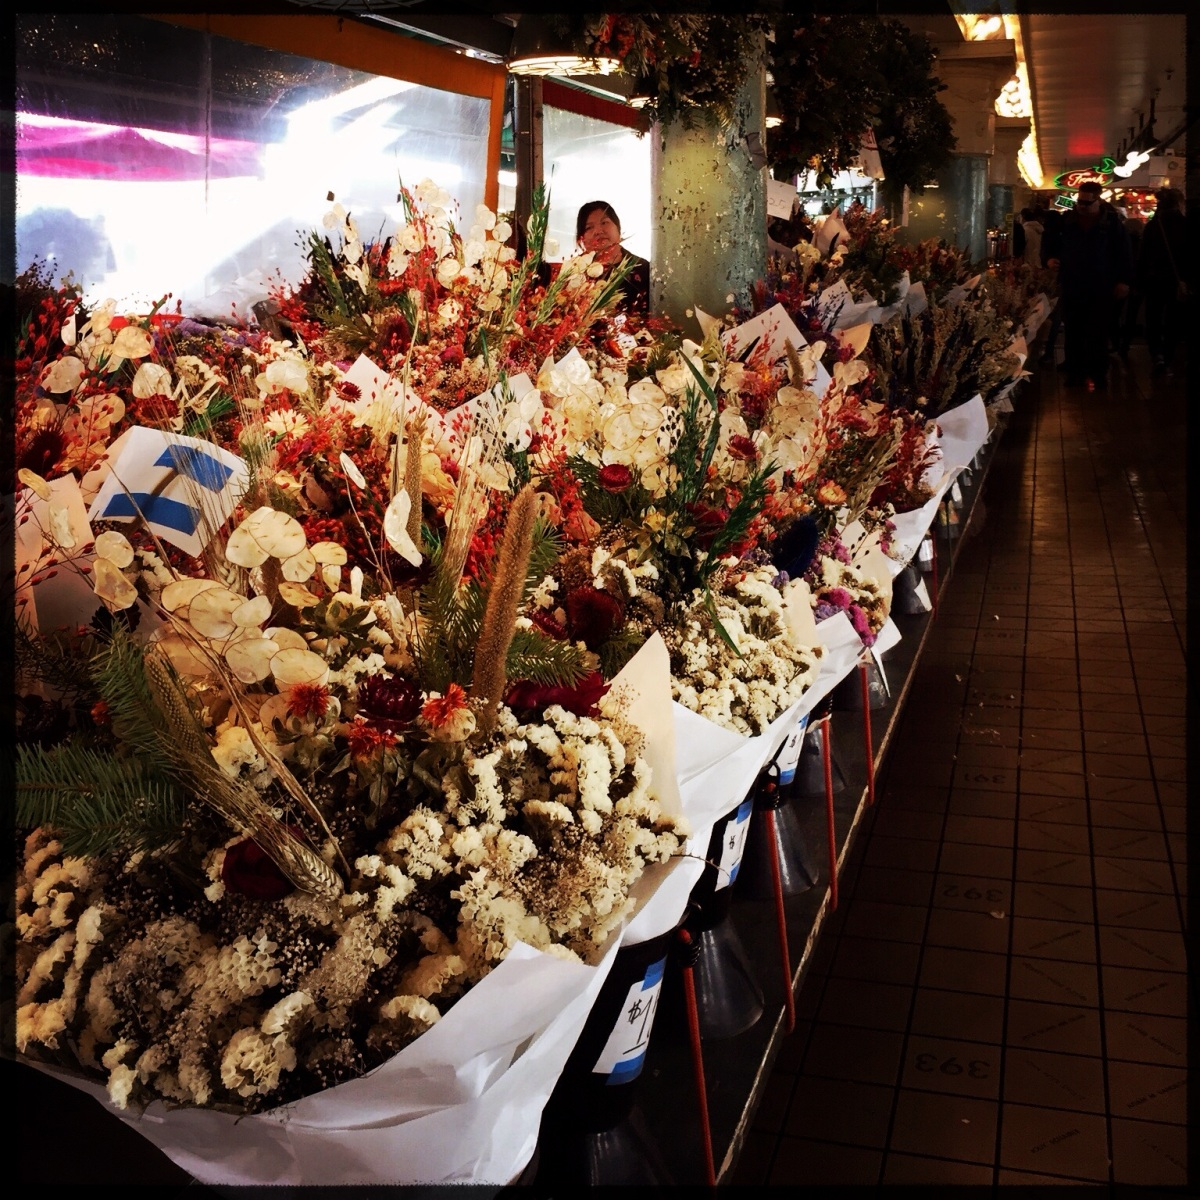 iPhoneography Monday:  Nature (Pike Place Market Flowers in December)